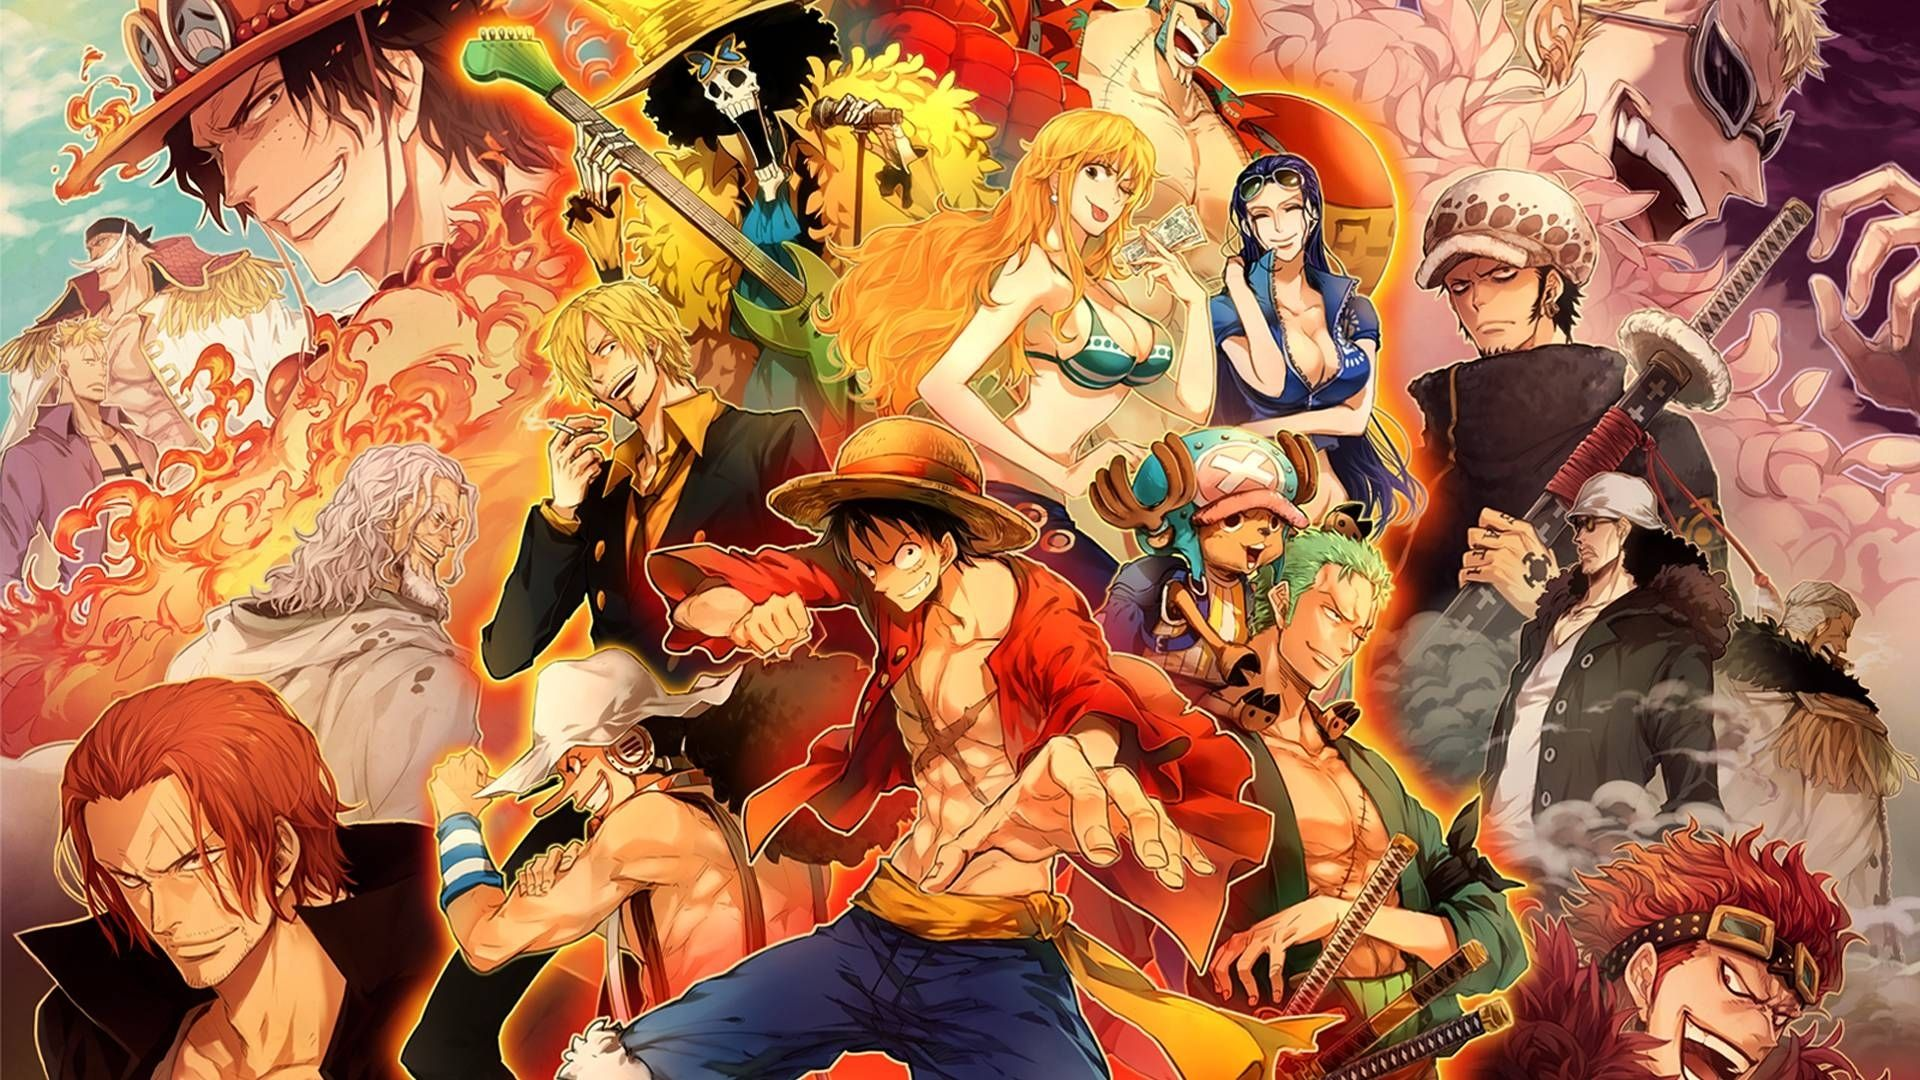 10 Best One Piece New World Wallpaper Full Hd 1920 1080 For Pc Desktop One Piece New World One Piece Images One Piece Manga